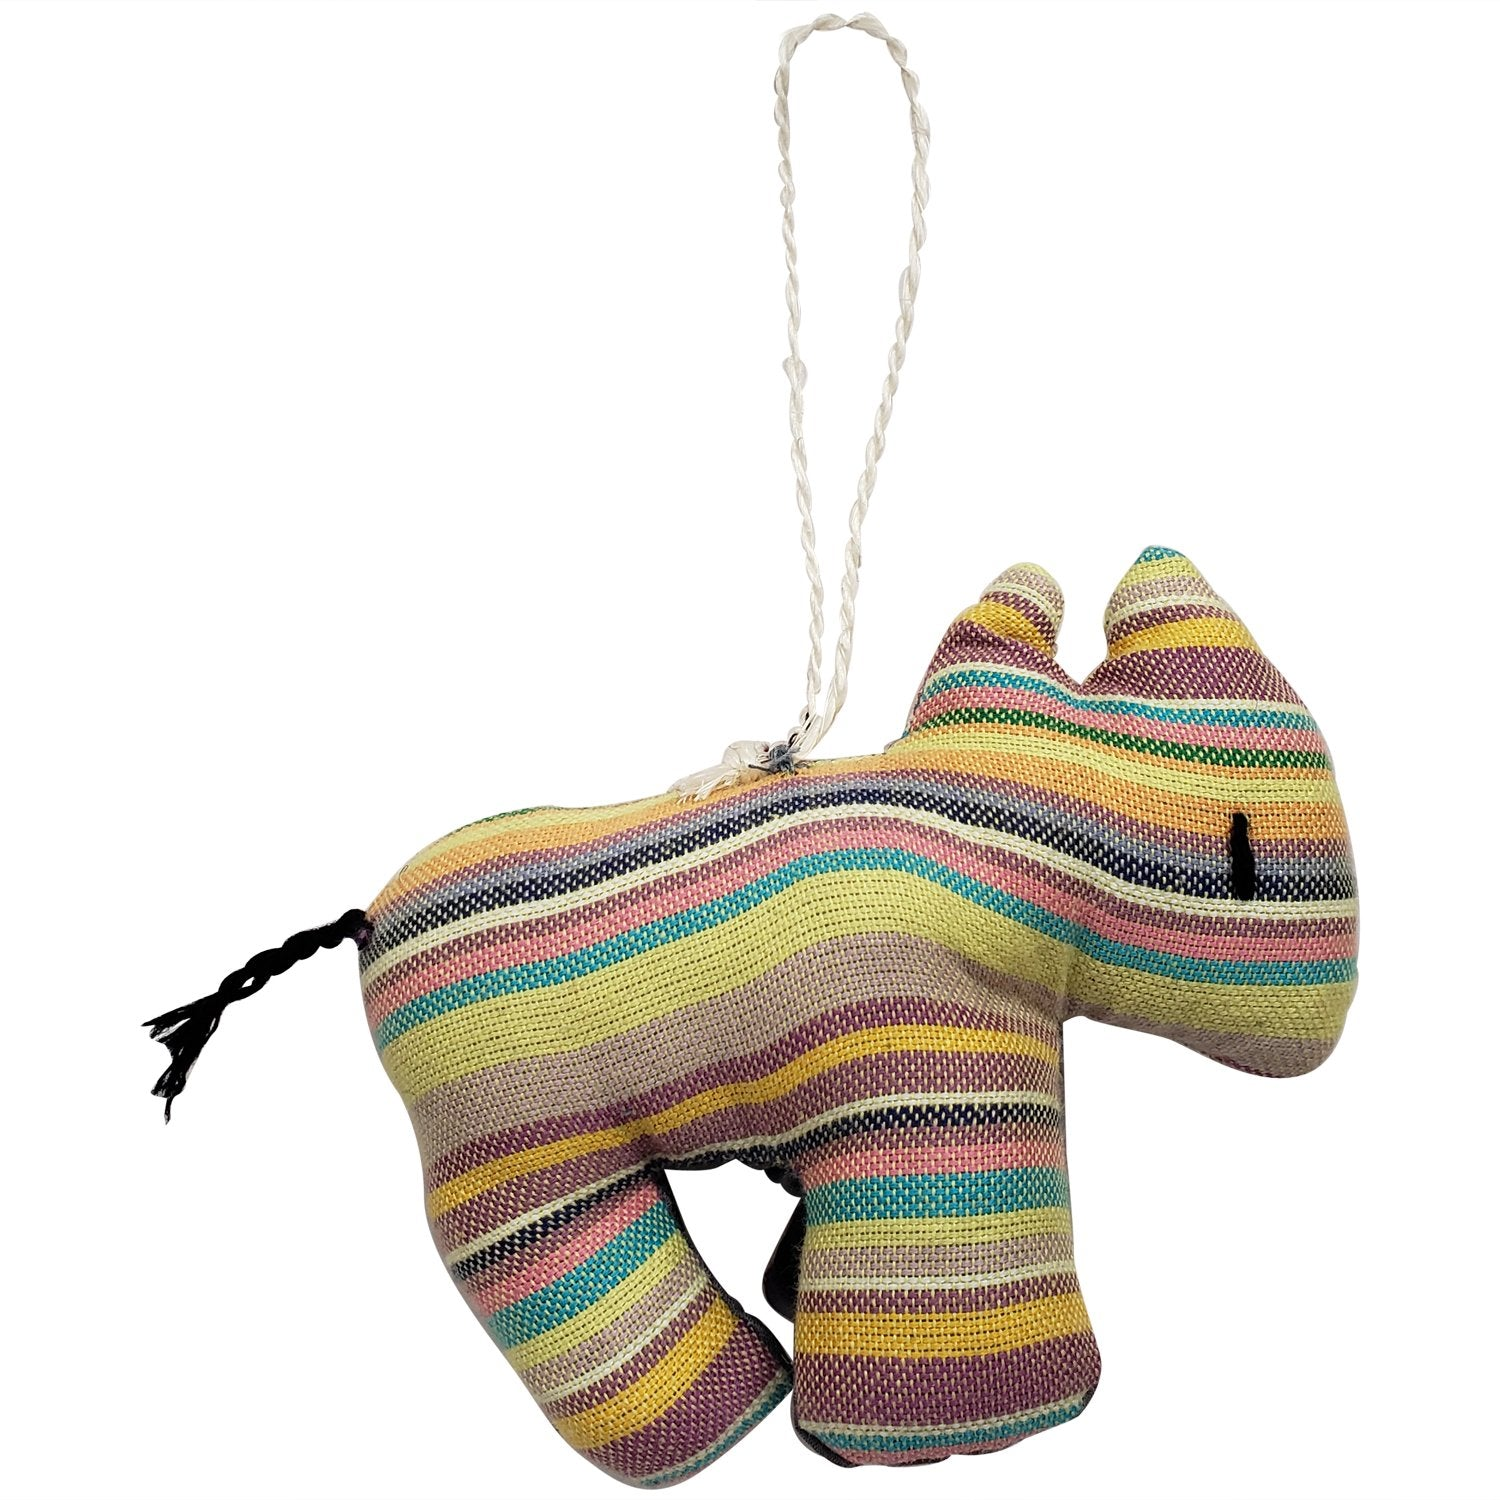 Rhino: Authentic Hand Made African Stuffed Animal Christmas Ornament (4.5 inches)